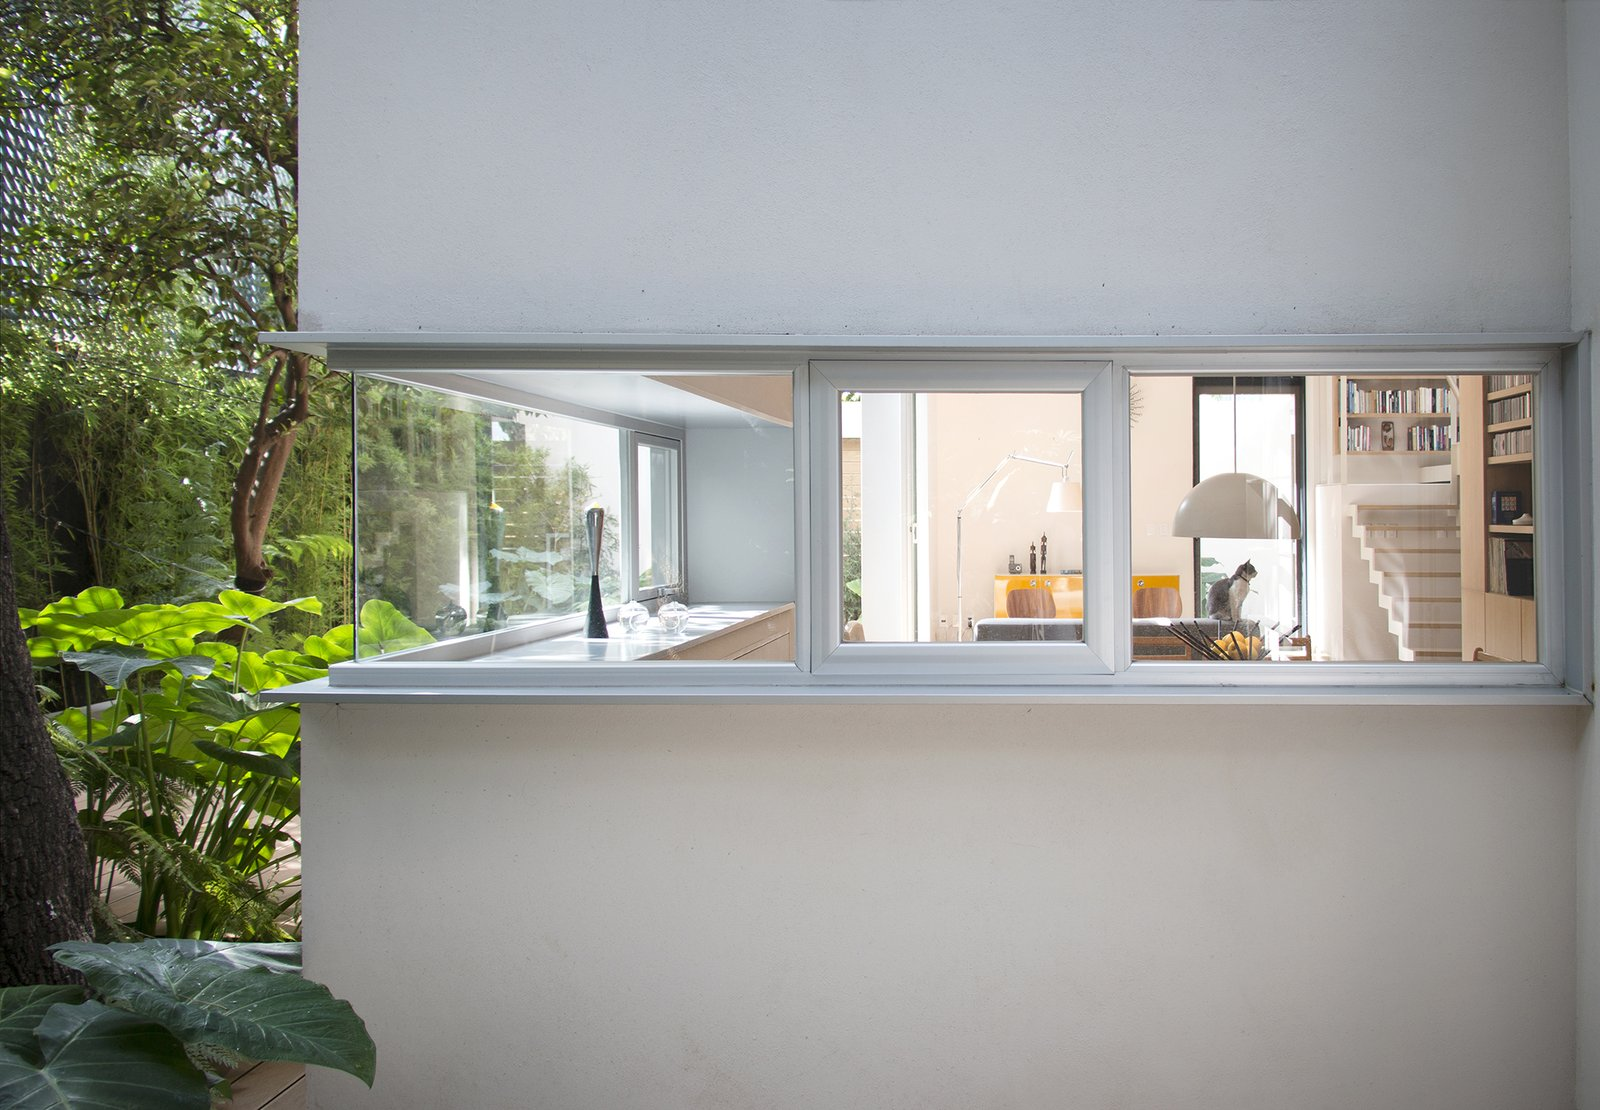 Photo 1 of 13 in Retired Couple Build Modern in Mexico City